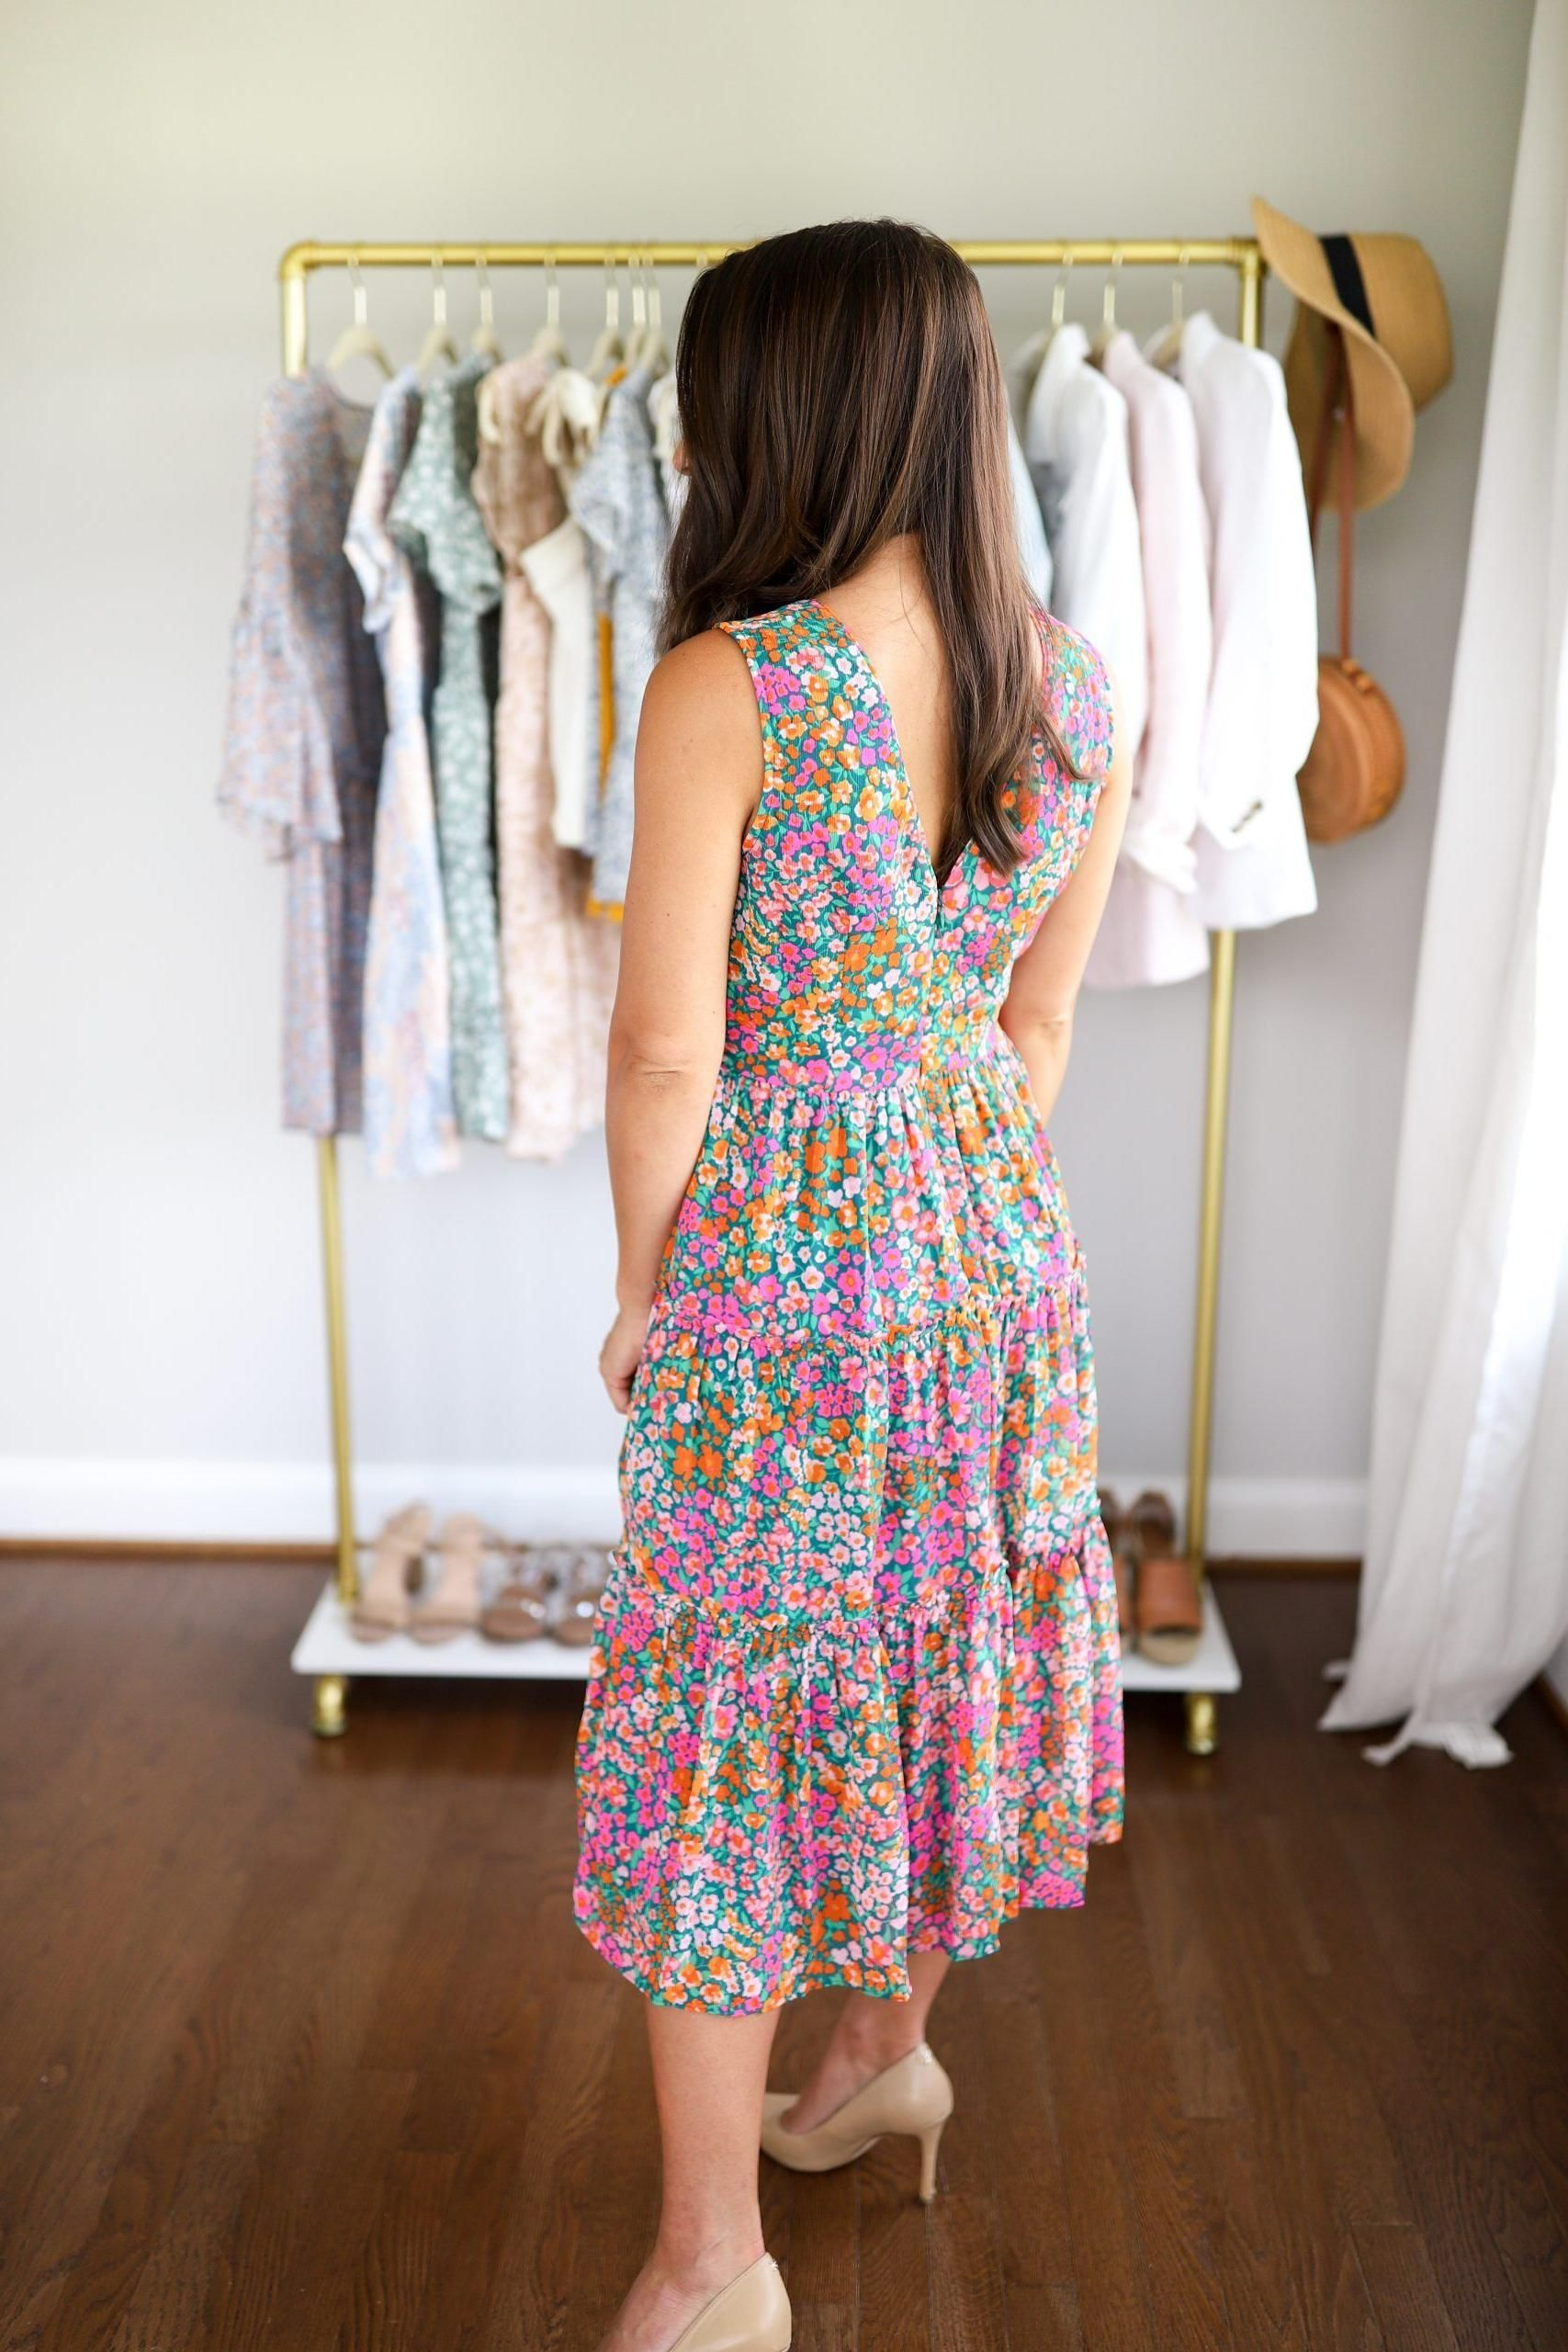 Fashion Tips Quotes Spring And Summer Wedding Guest Dresses Petite Style Blogger Petite Dresses Summer Dresse Fashion Fashion Blogger Petite Edgy Fashion [ 2560 x 1707 Pixel ]